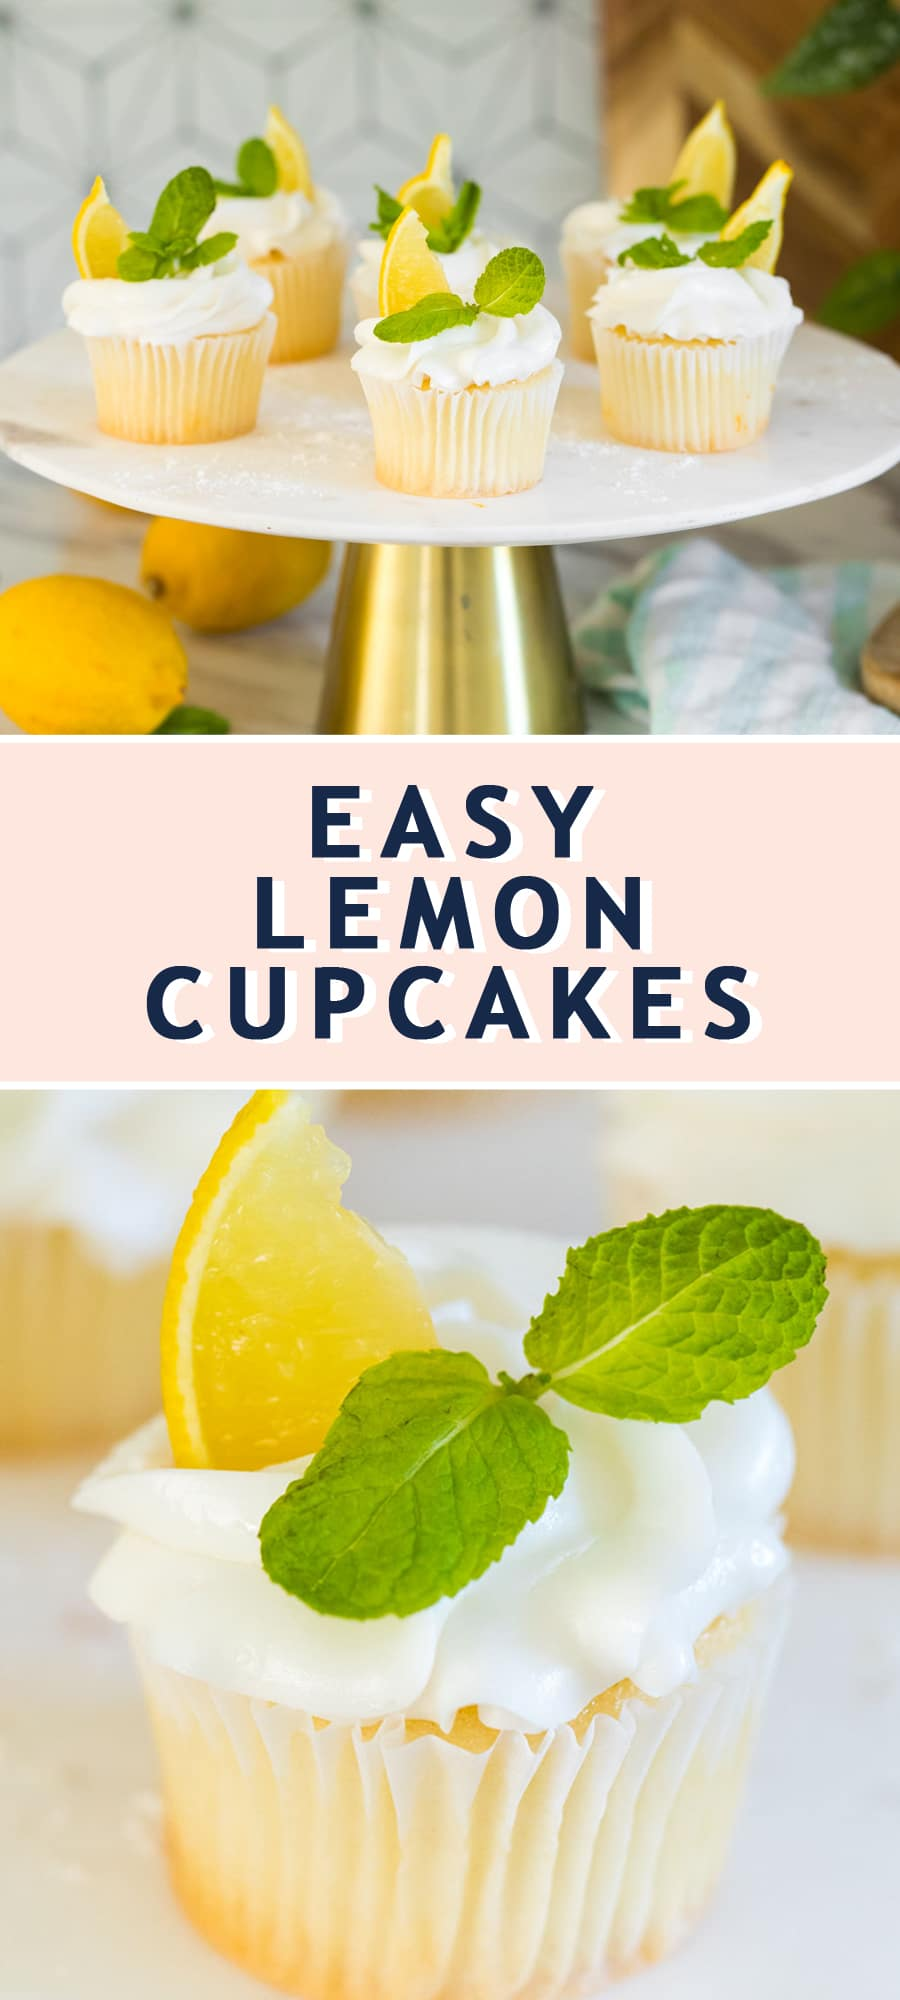 photo of the lemon cupcakes recipe card by top Houston lifestyle blogger Ashley Rose of Sugar & Cloth